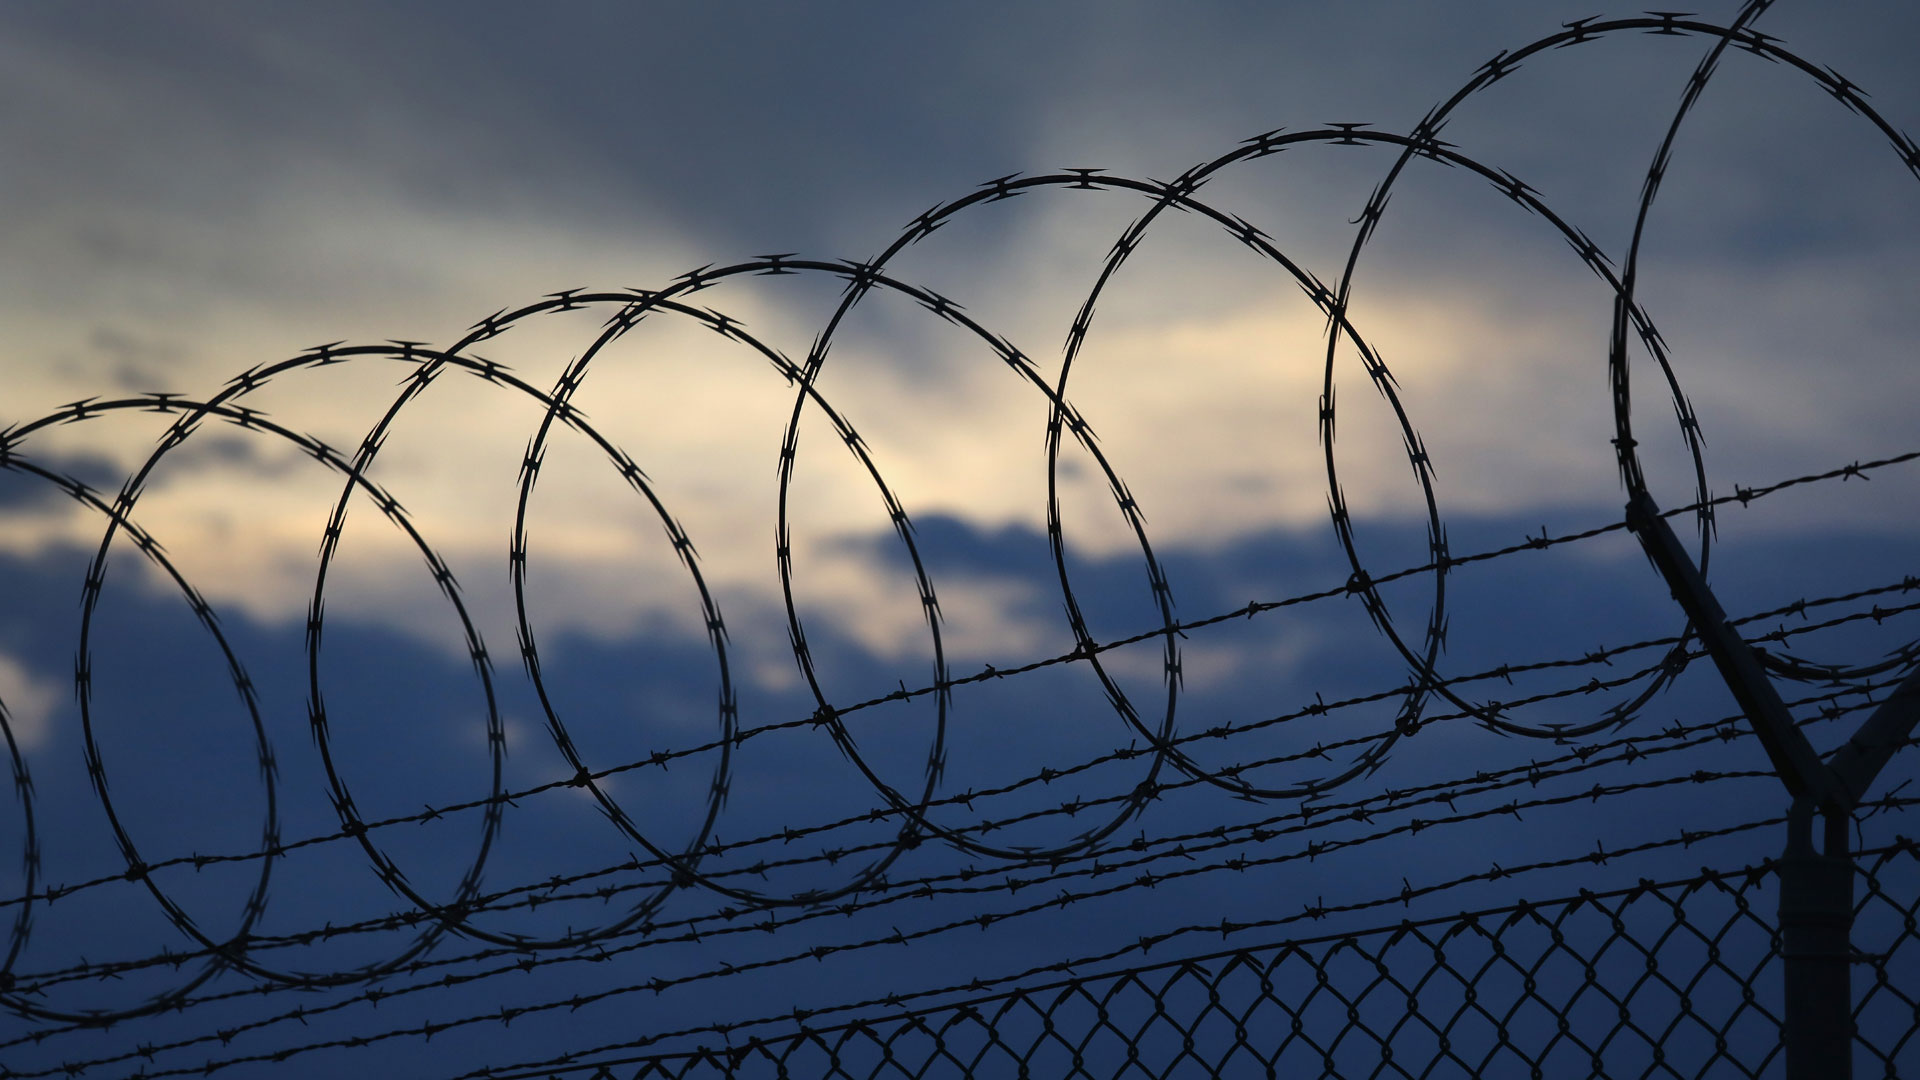 Barbed wire, prisons